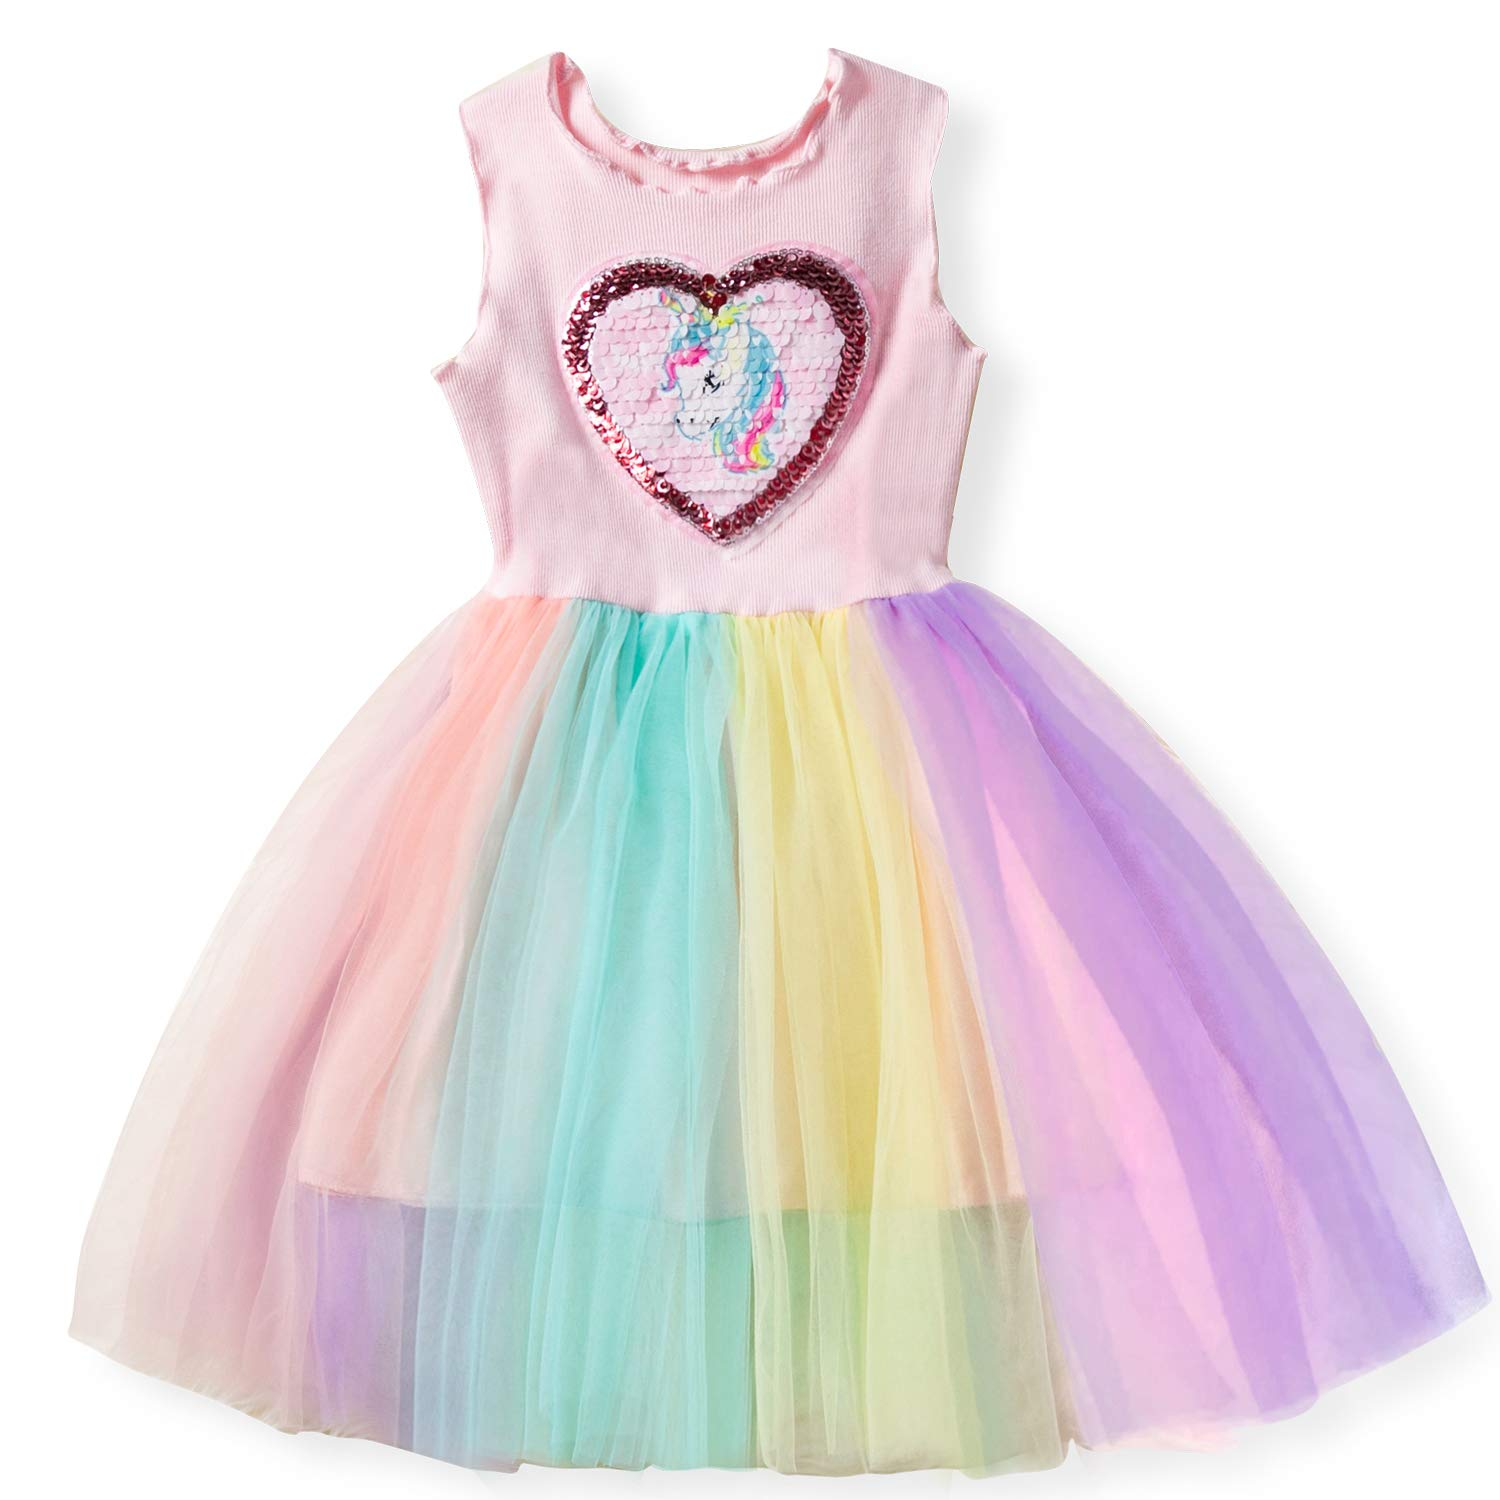 NNJXD Girls Summer Sleeveless Casual Star Sequins Tutu Party Princess Dress for 2-7 Years